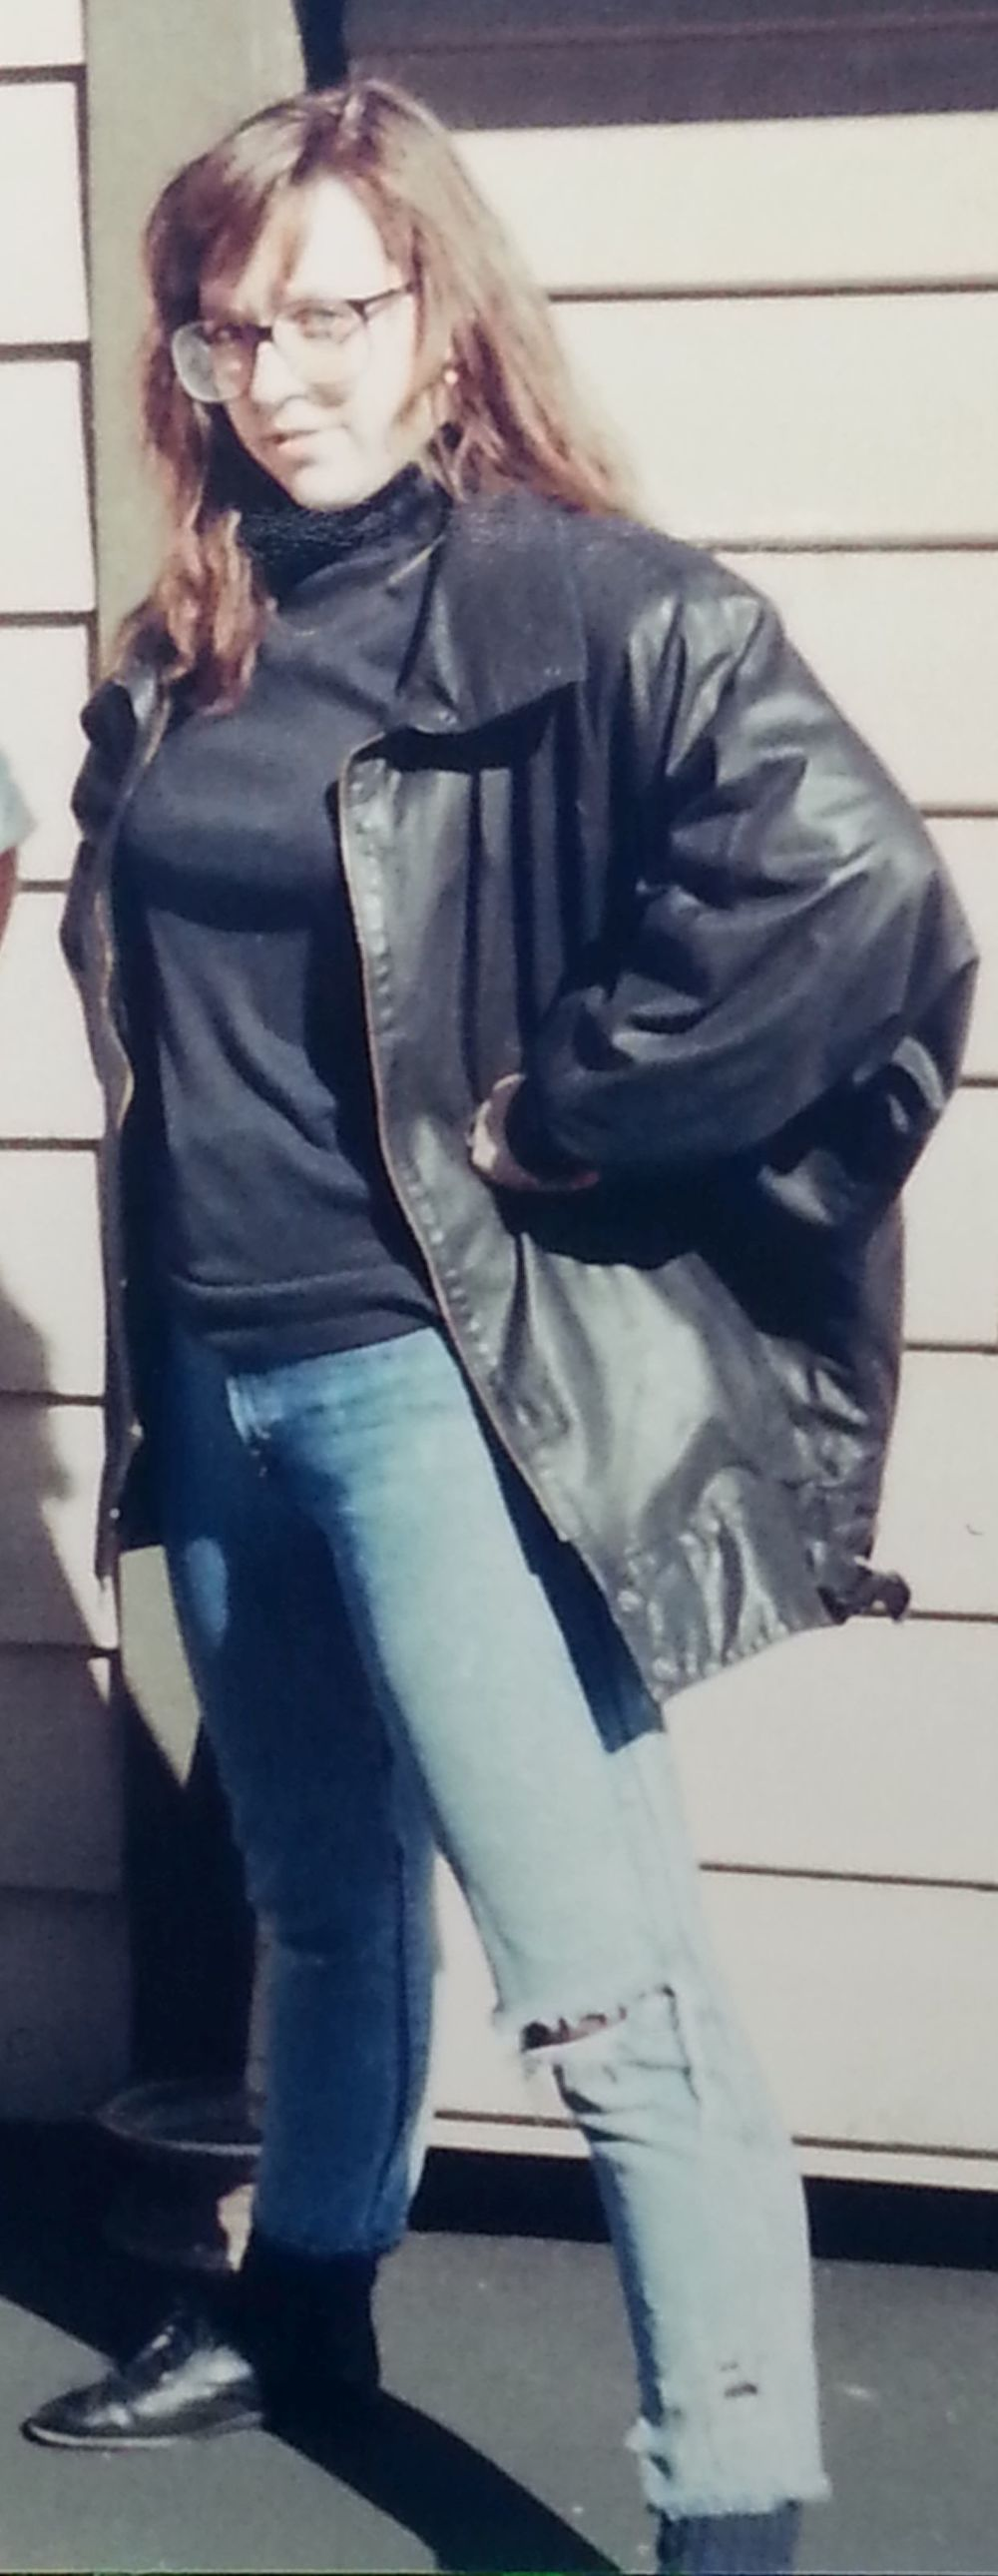 Jennifer in 1989...wearing her very own Wilson's Leather jacket.